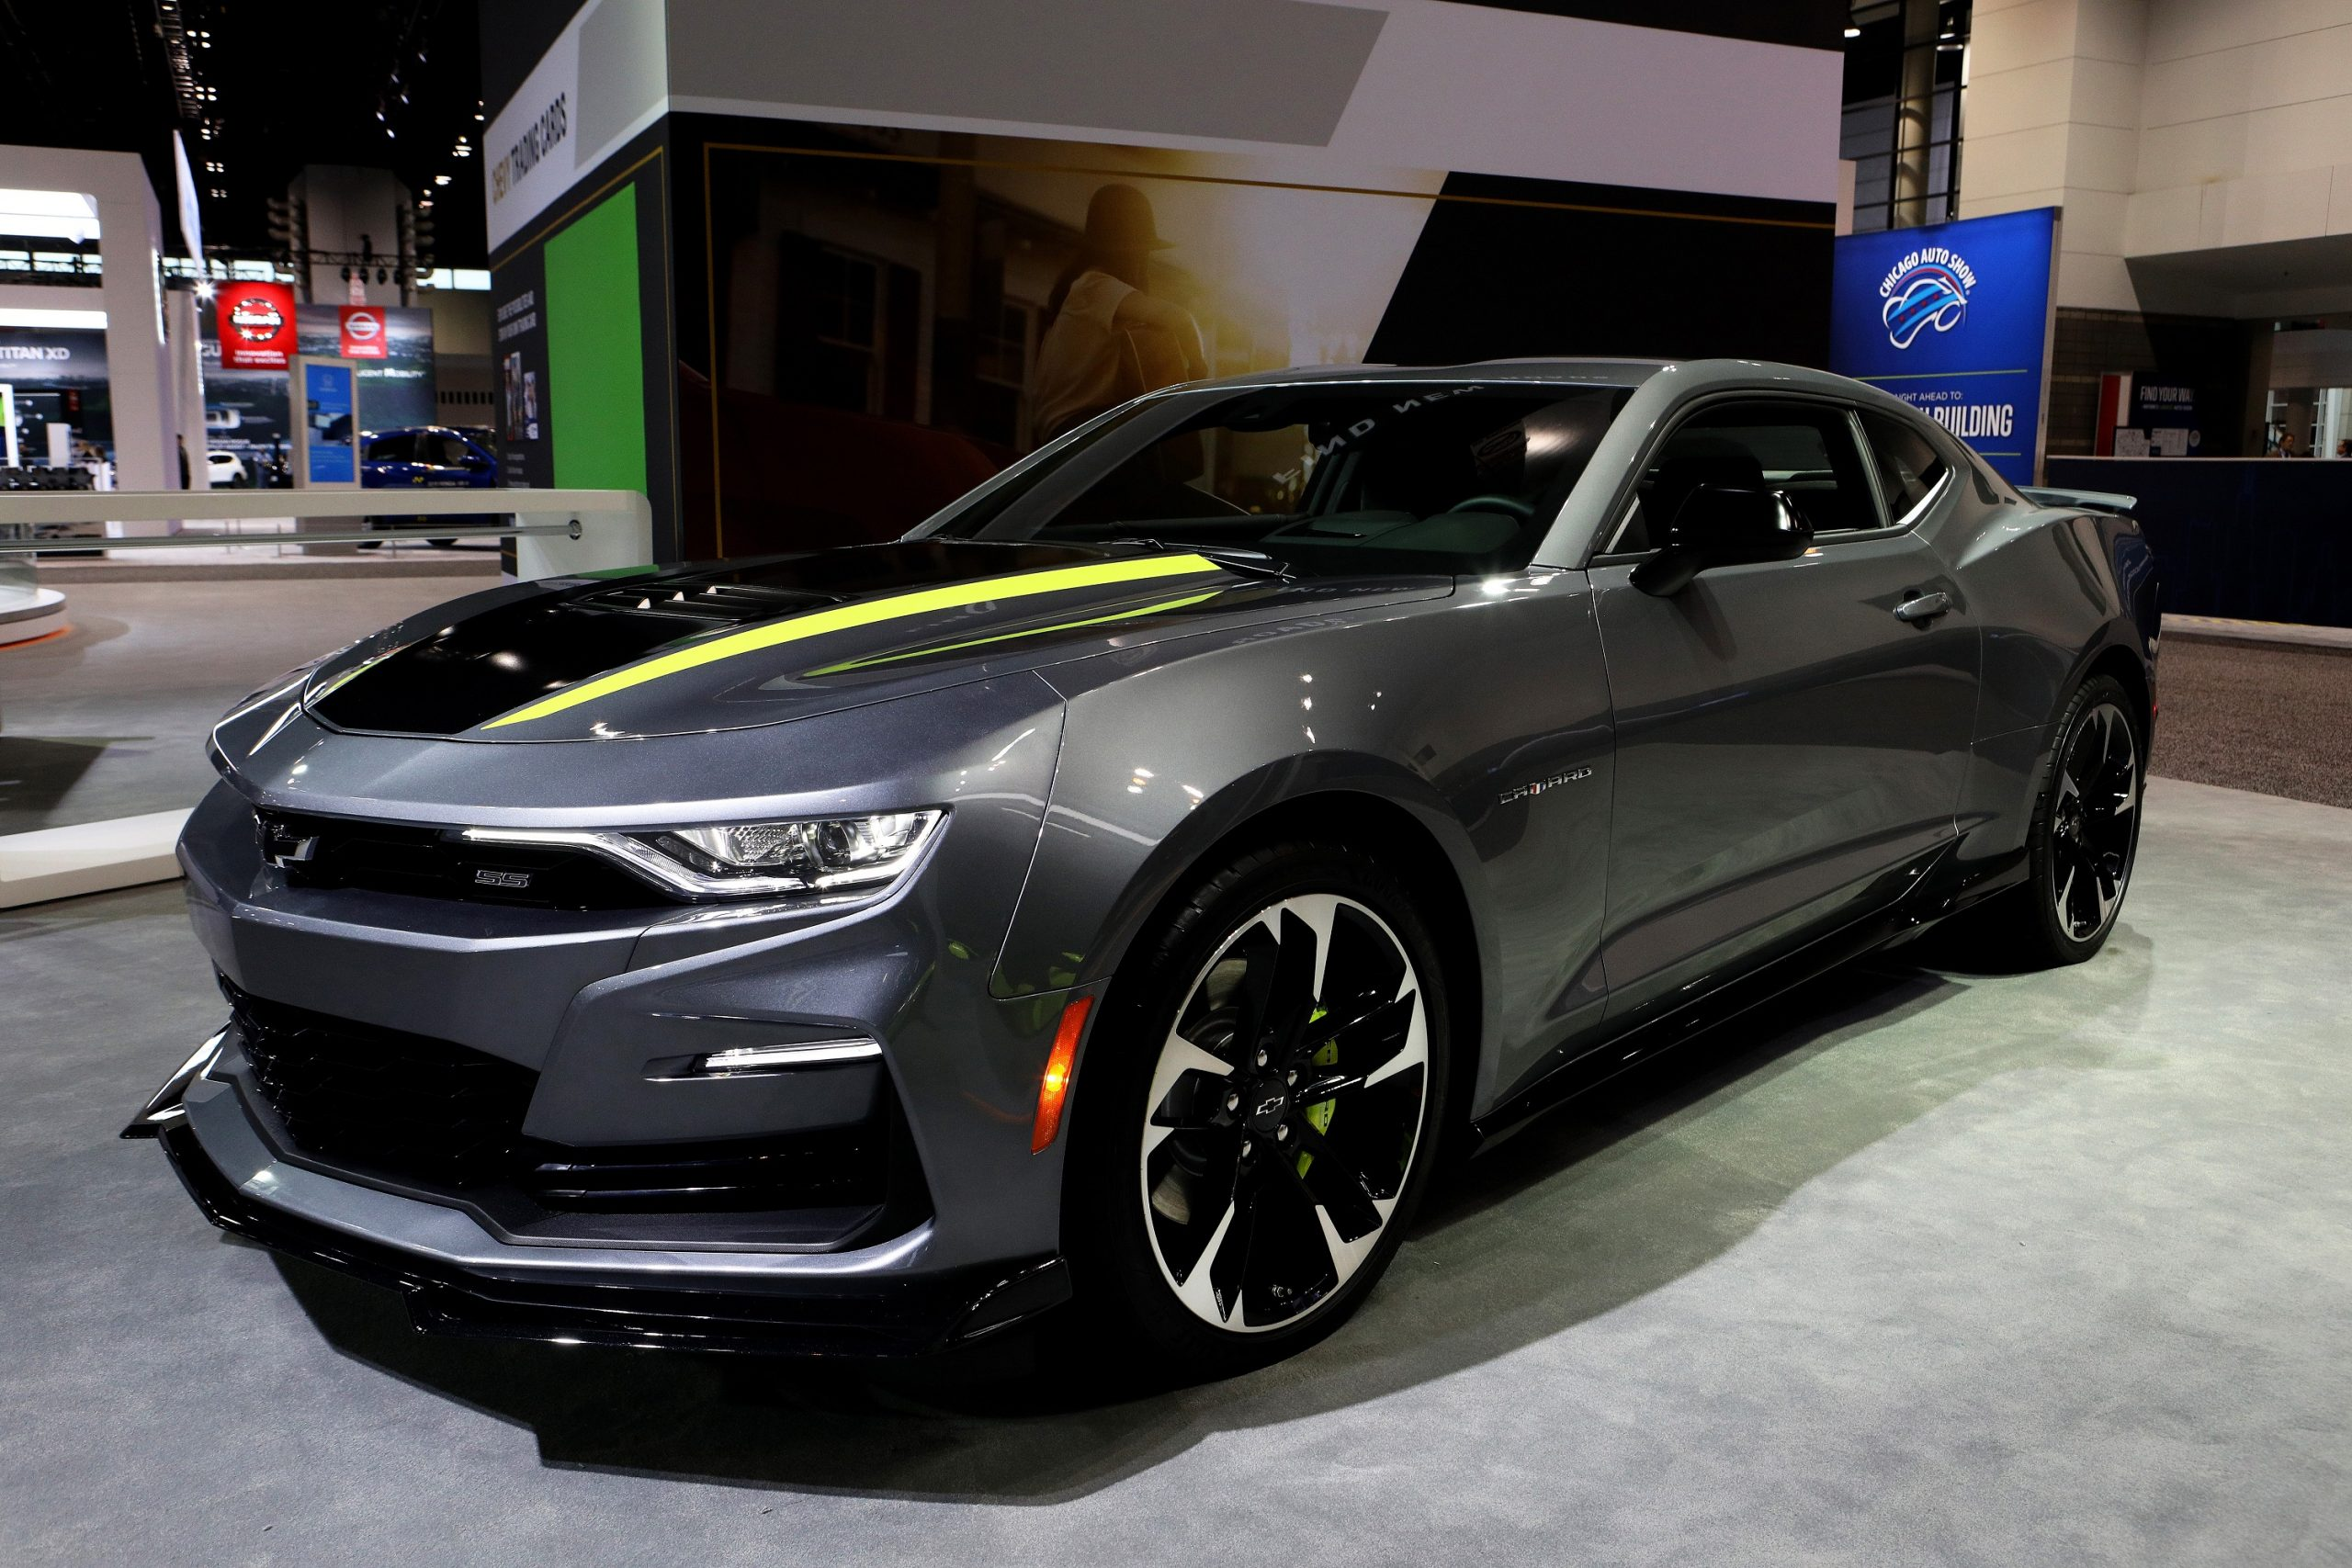 A grey Chevrolet Camaro shot from the 3/4 angle at an auto show